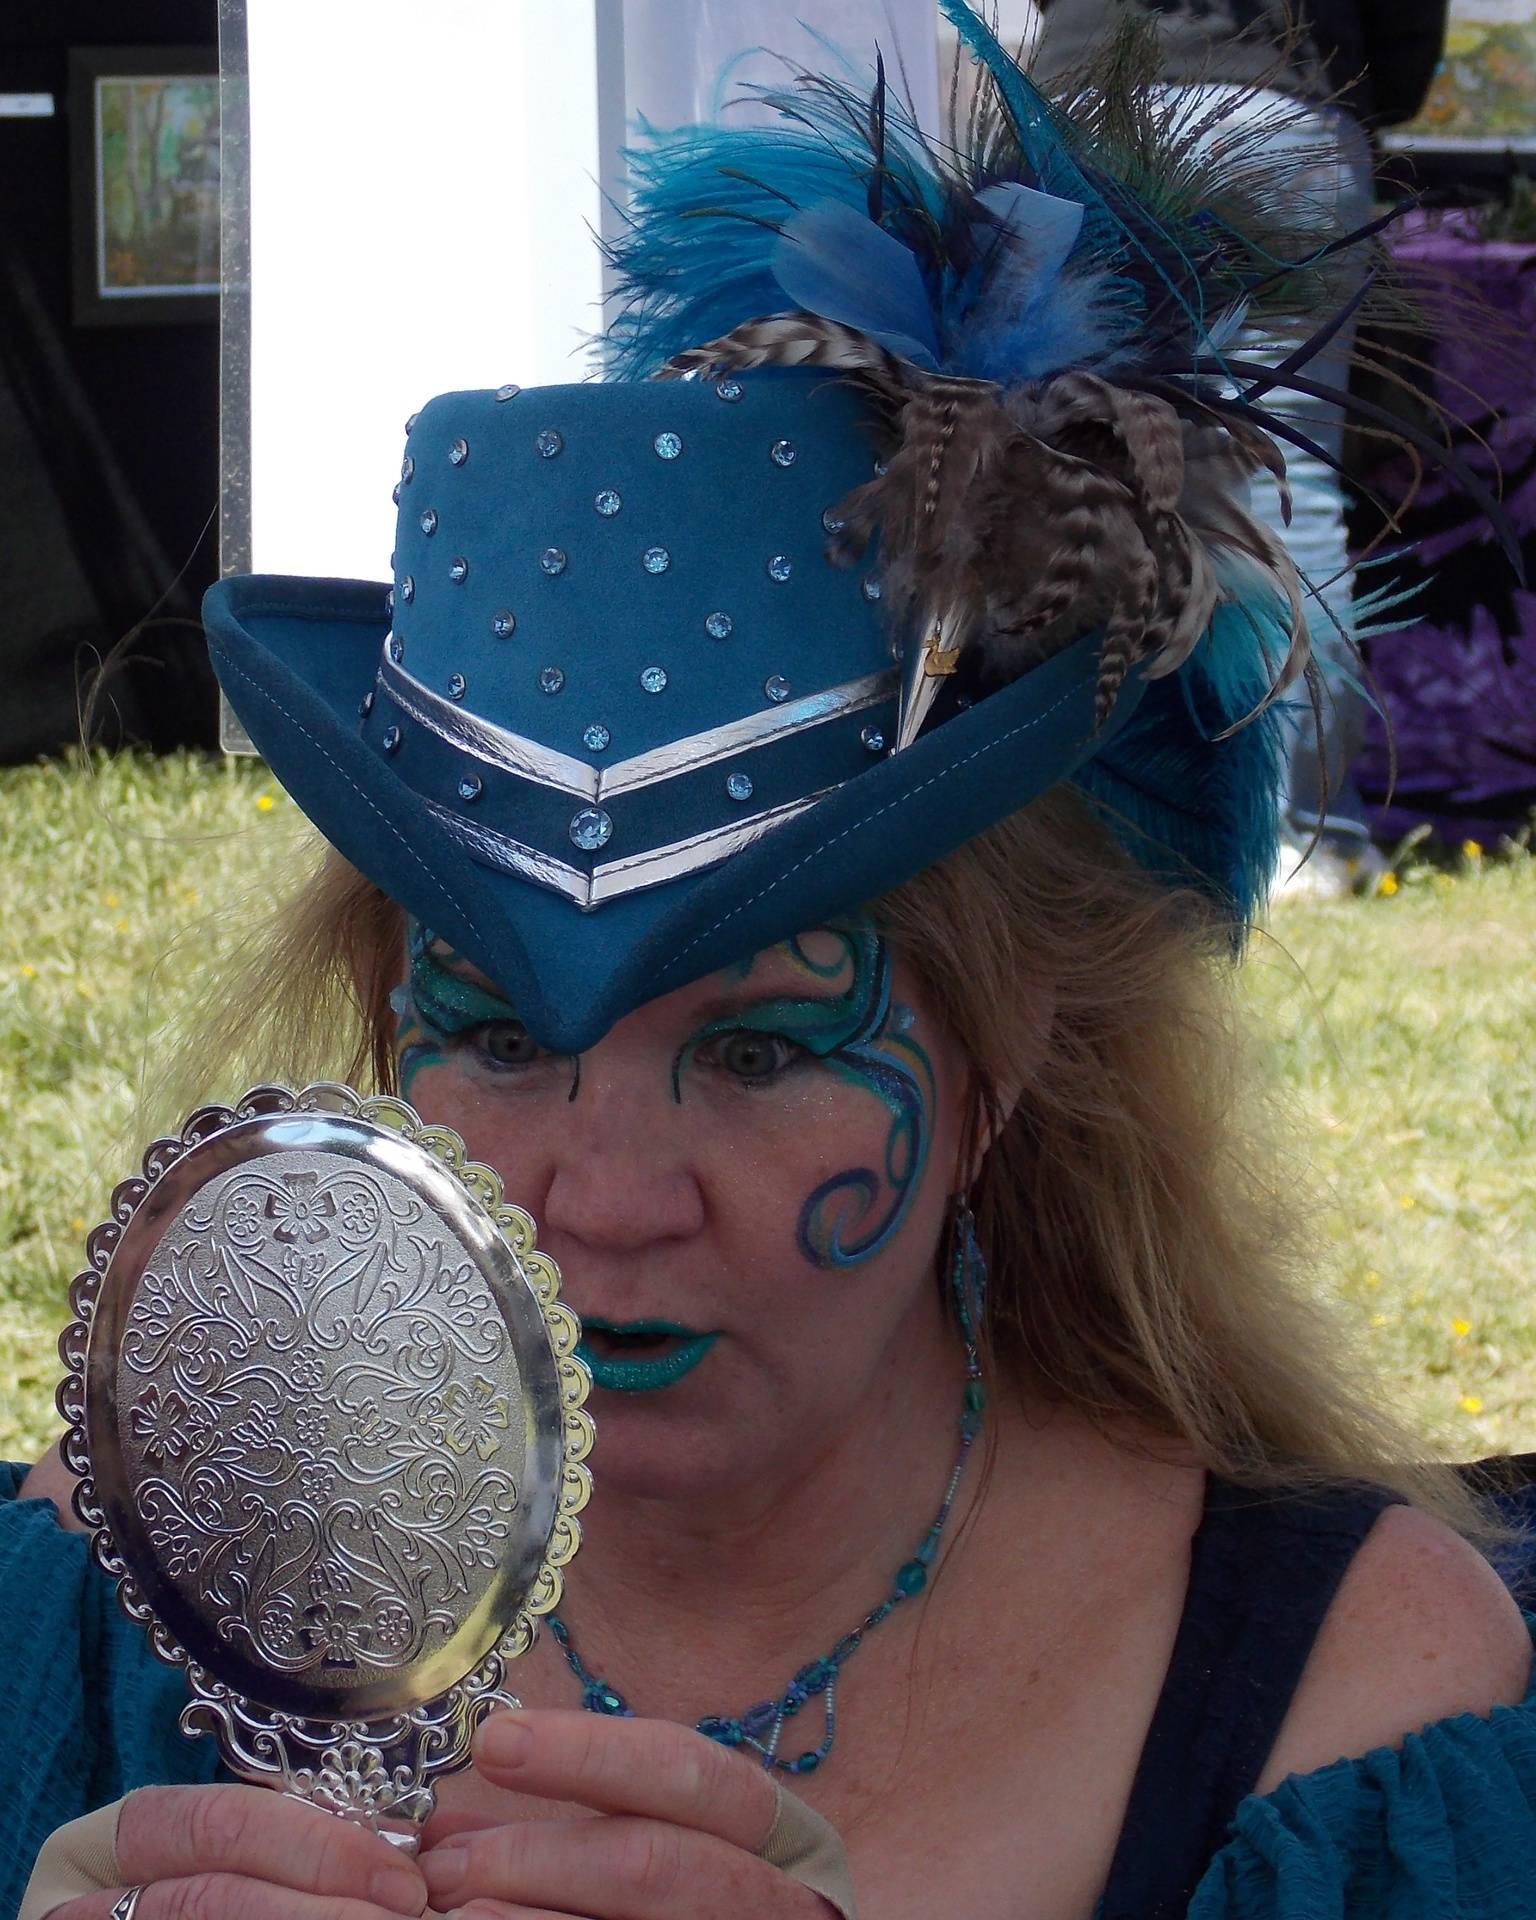 The Teal Lady at the Faerie festival